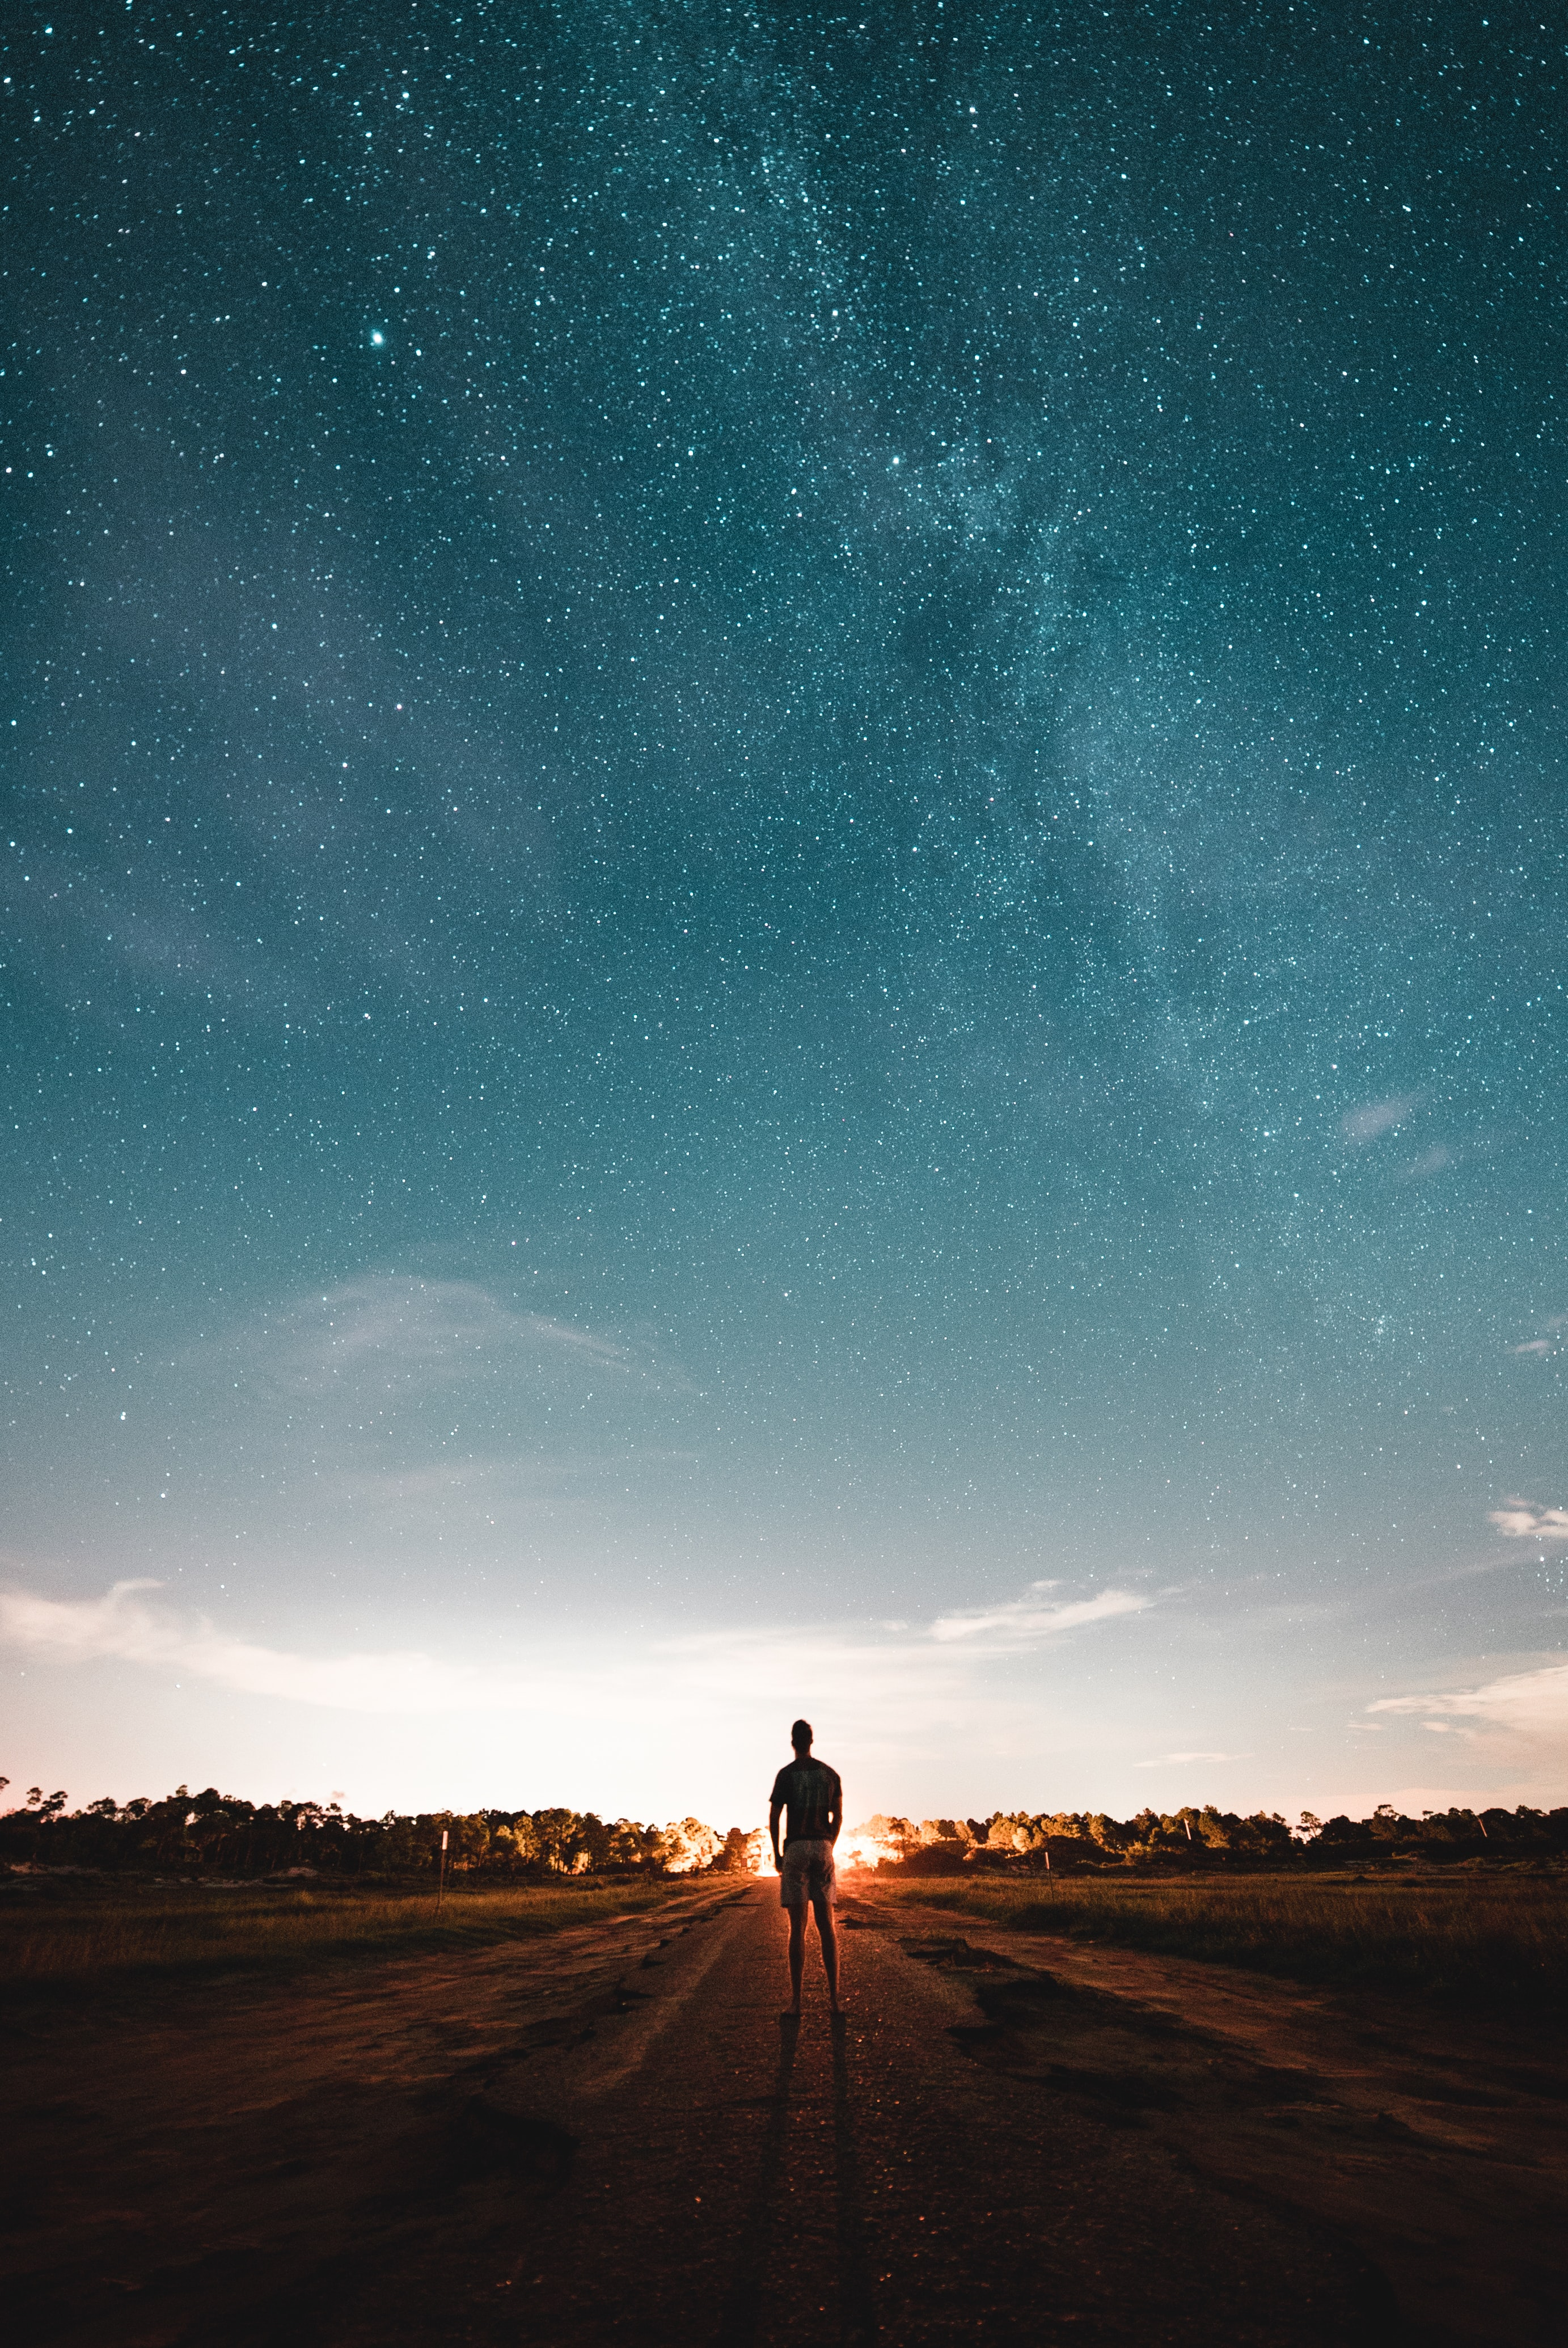 silhouette photo of man under star full sky